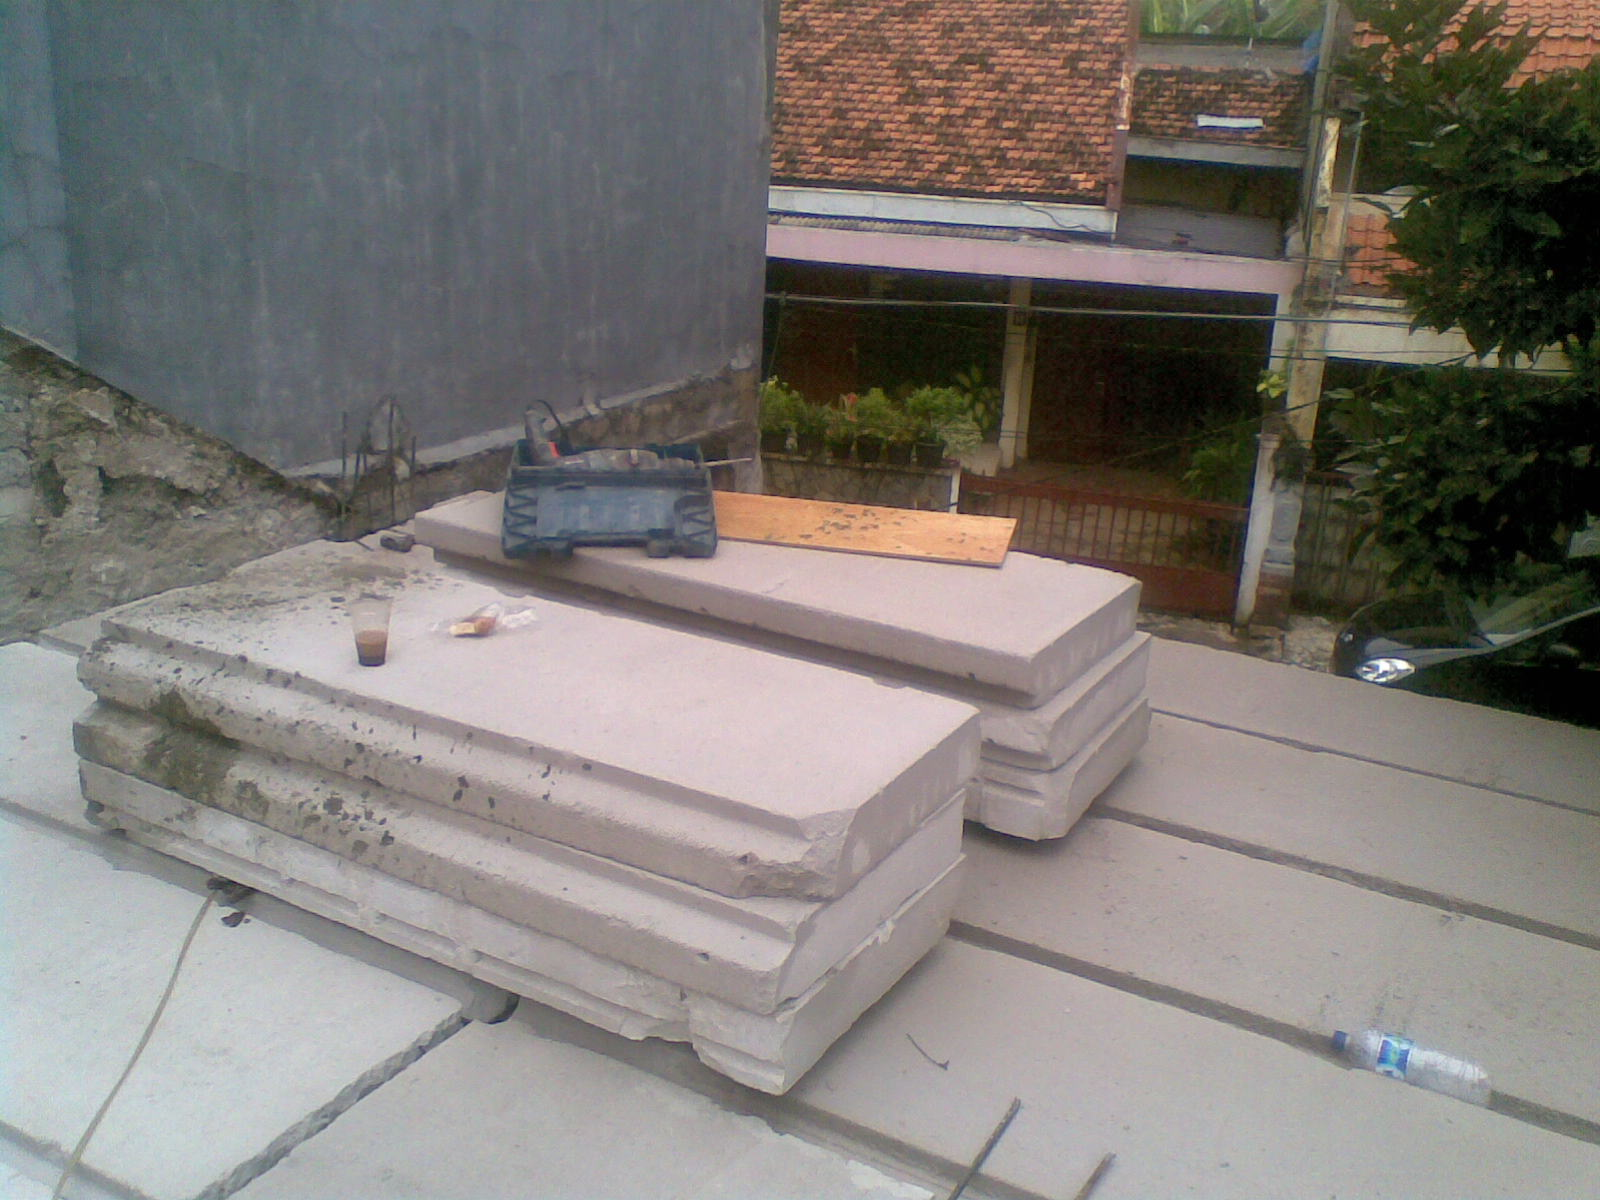 bangun rumah 6 panel lantai hebel To Give To Share